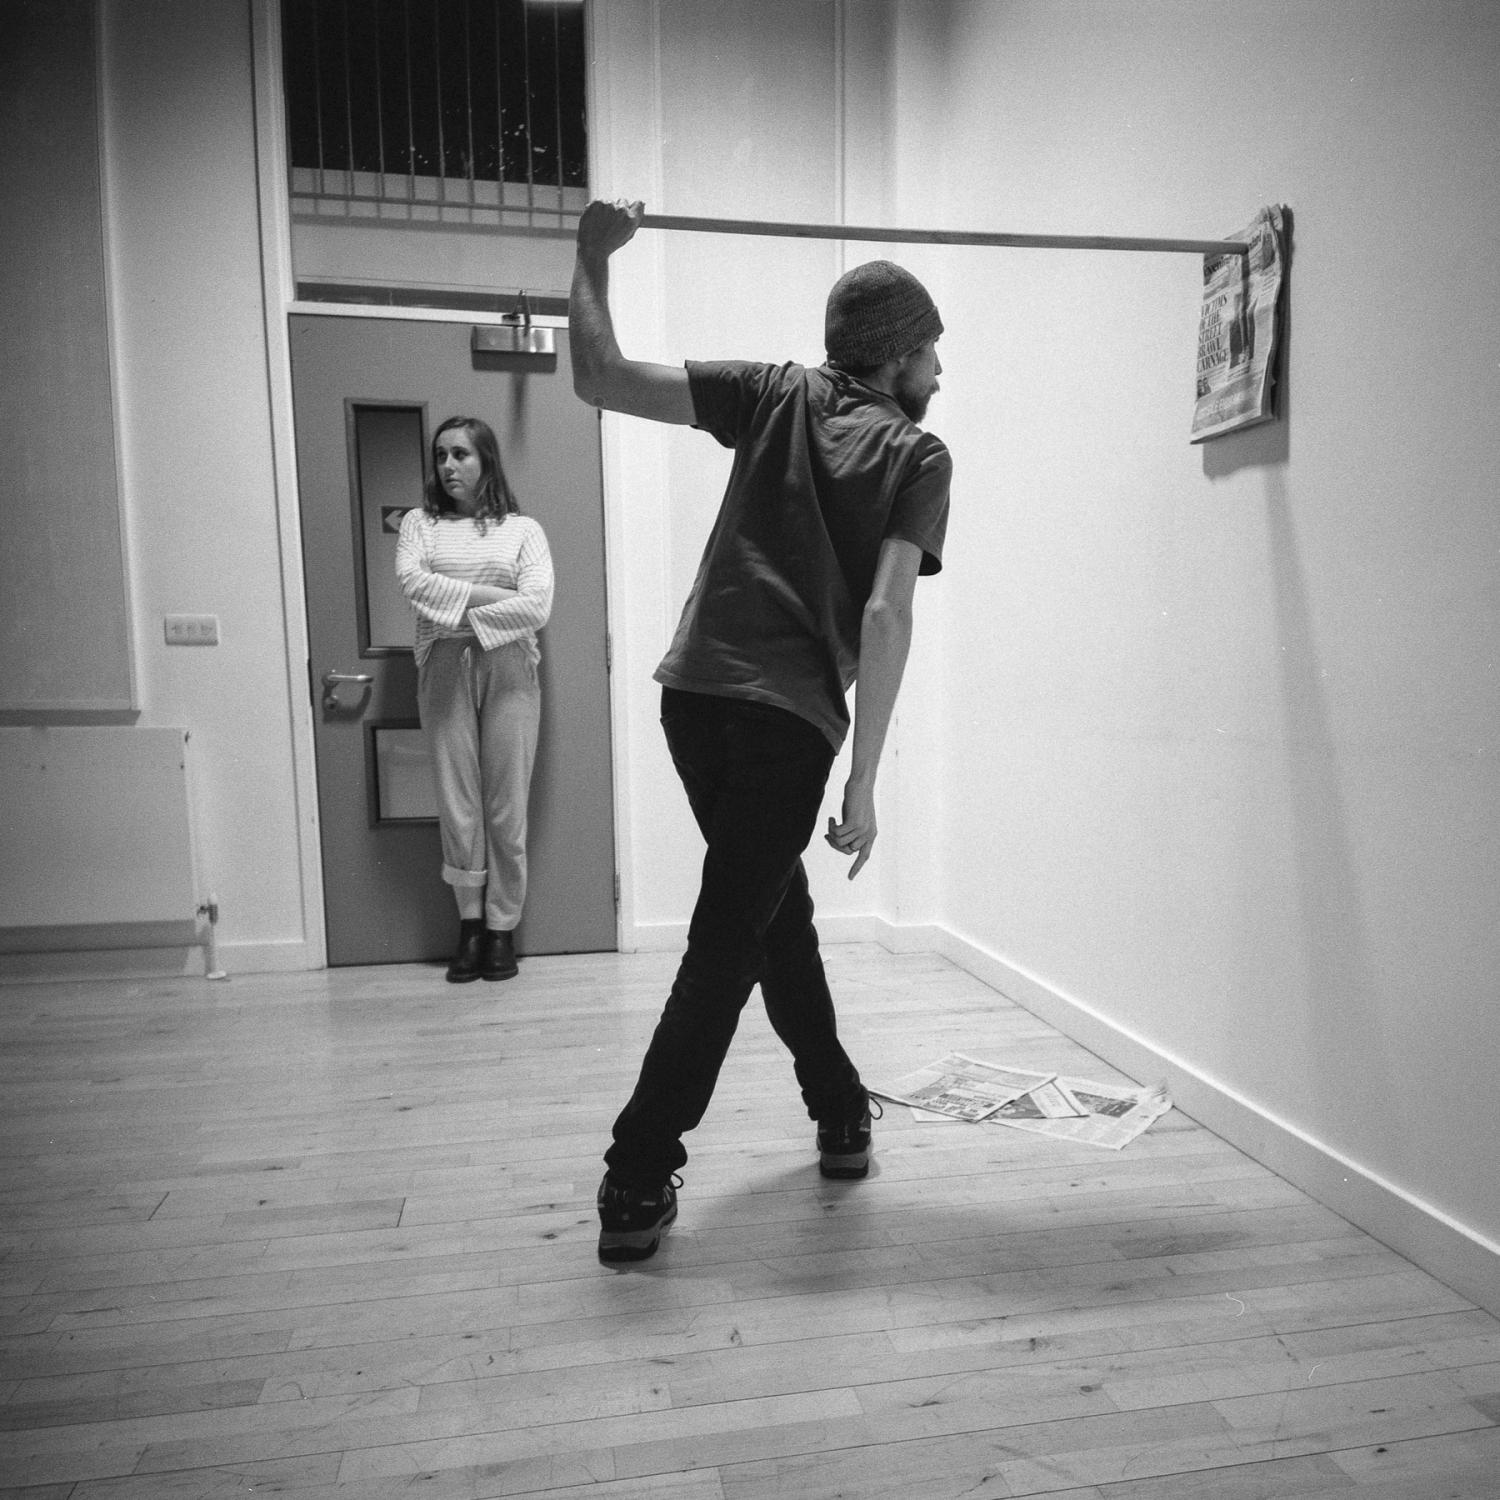 Actors Hana Kelly and Jack Tivey at a rehearsal. London, January 2020.